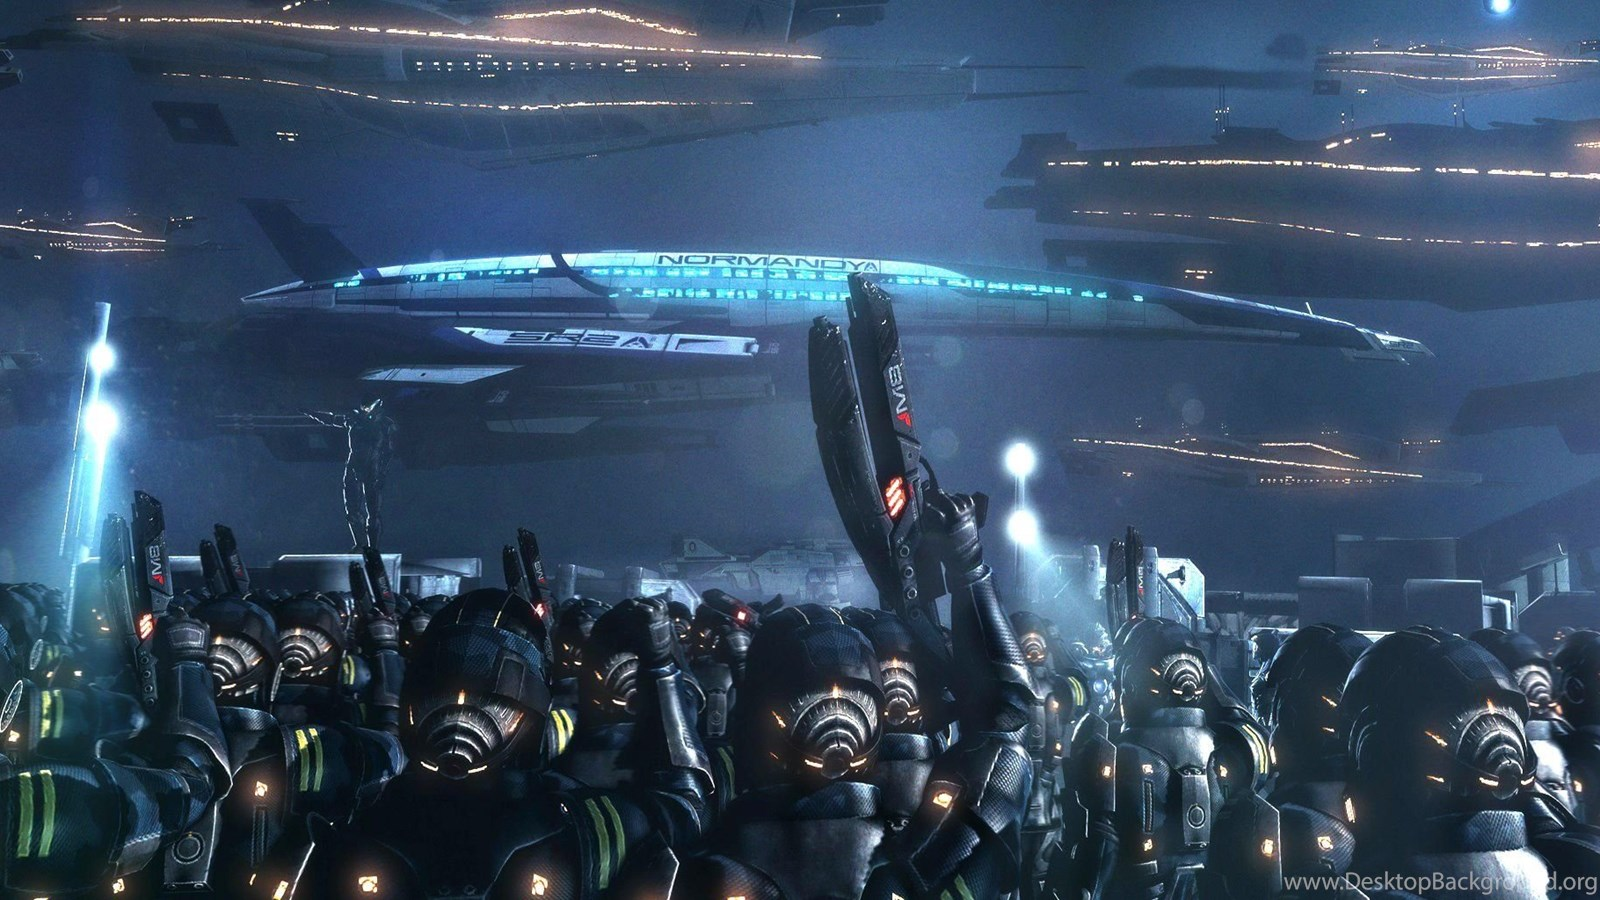 Mass Effect Andromeda Wallpaper Iphone: MASS EFFECT 4 Andromeda Sci Fi Shooter Action Futuristic